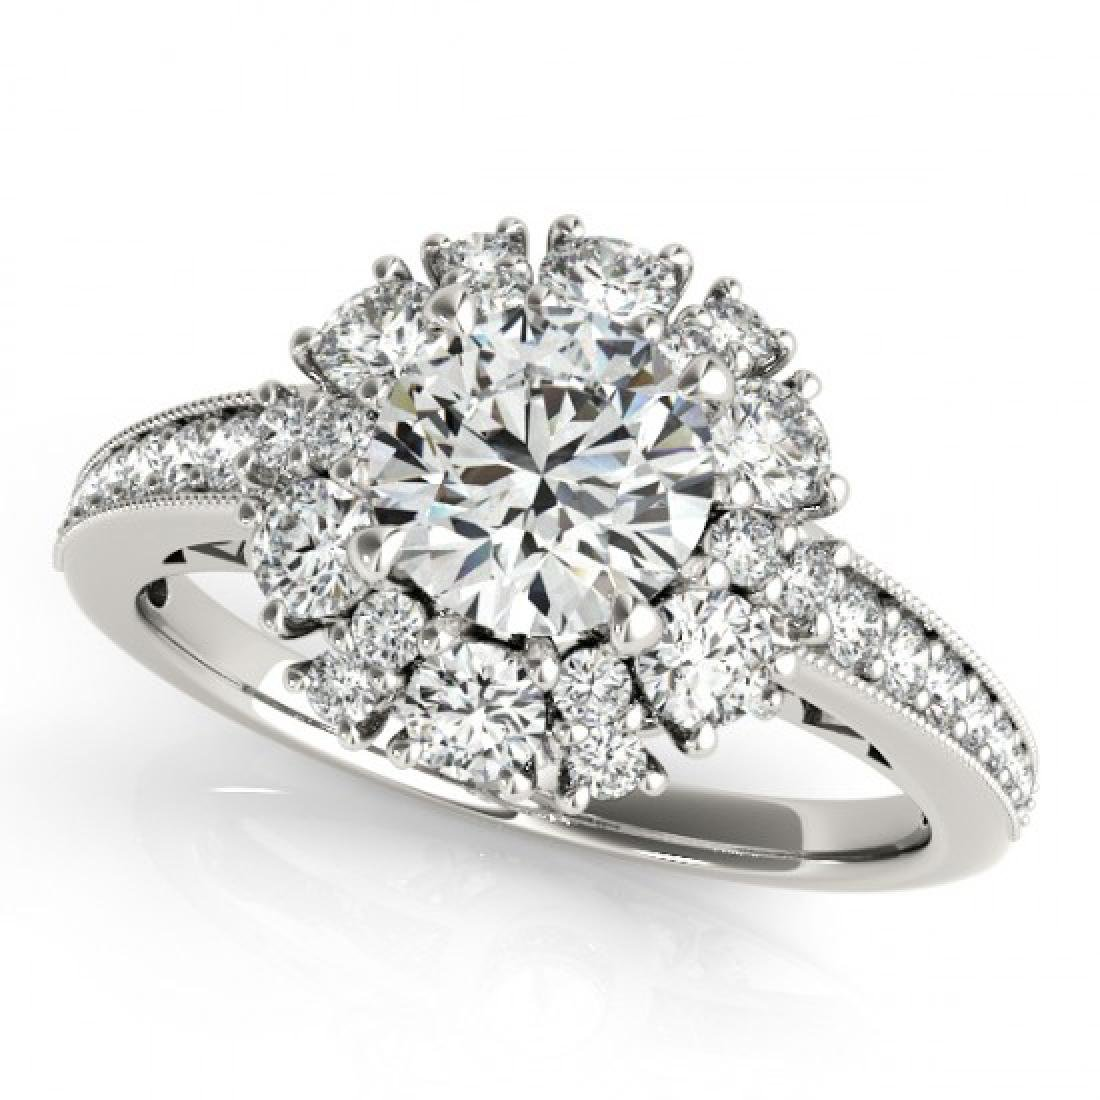 1.91 CTW Certified VS/SI Diamond Solitaire Halo Ring